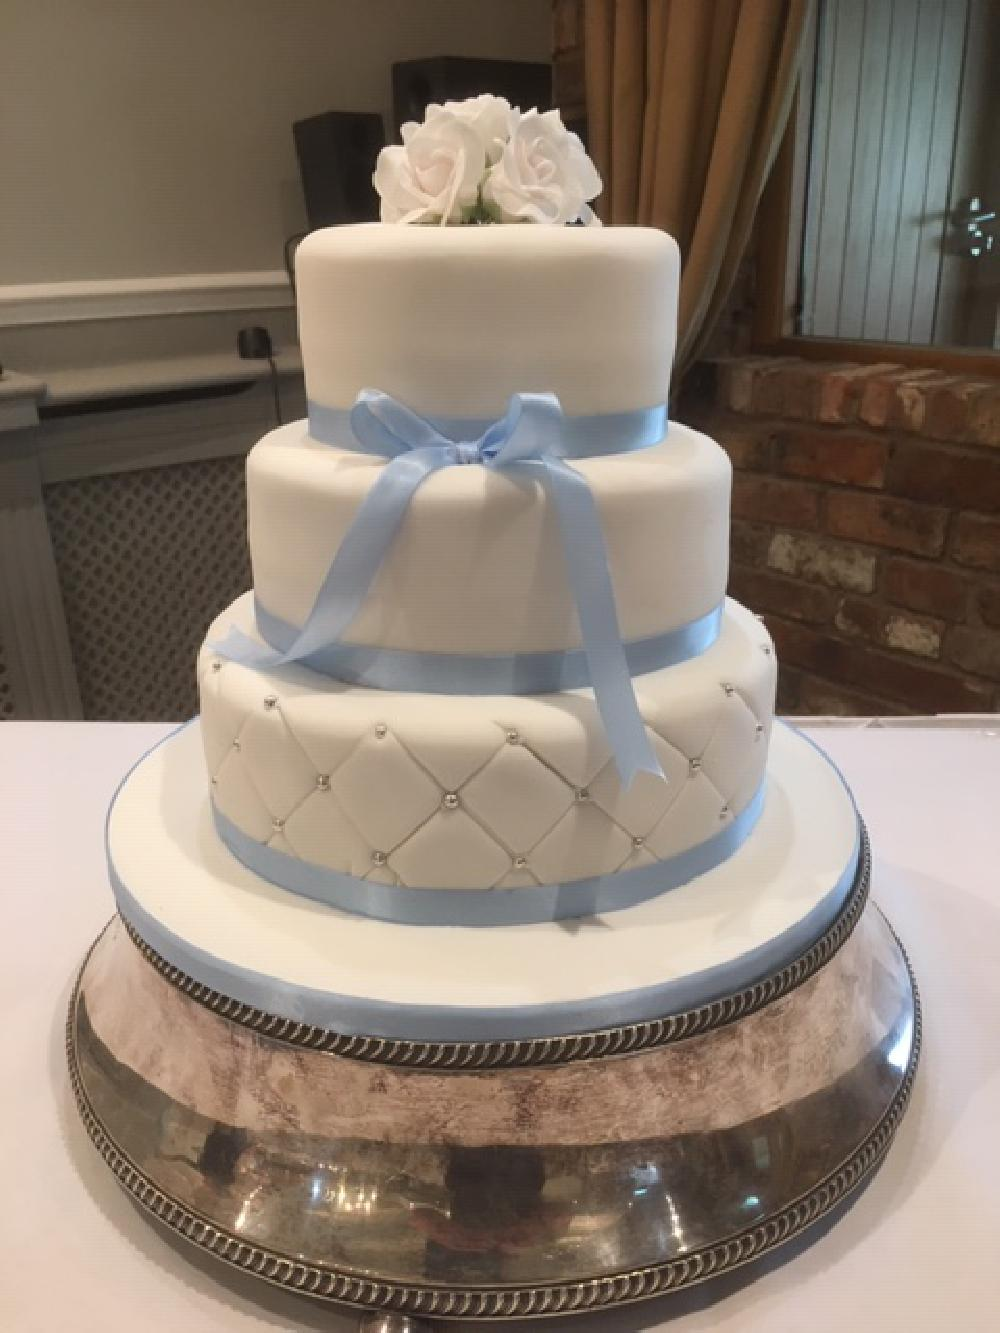 Stylish three tier cake